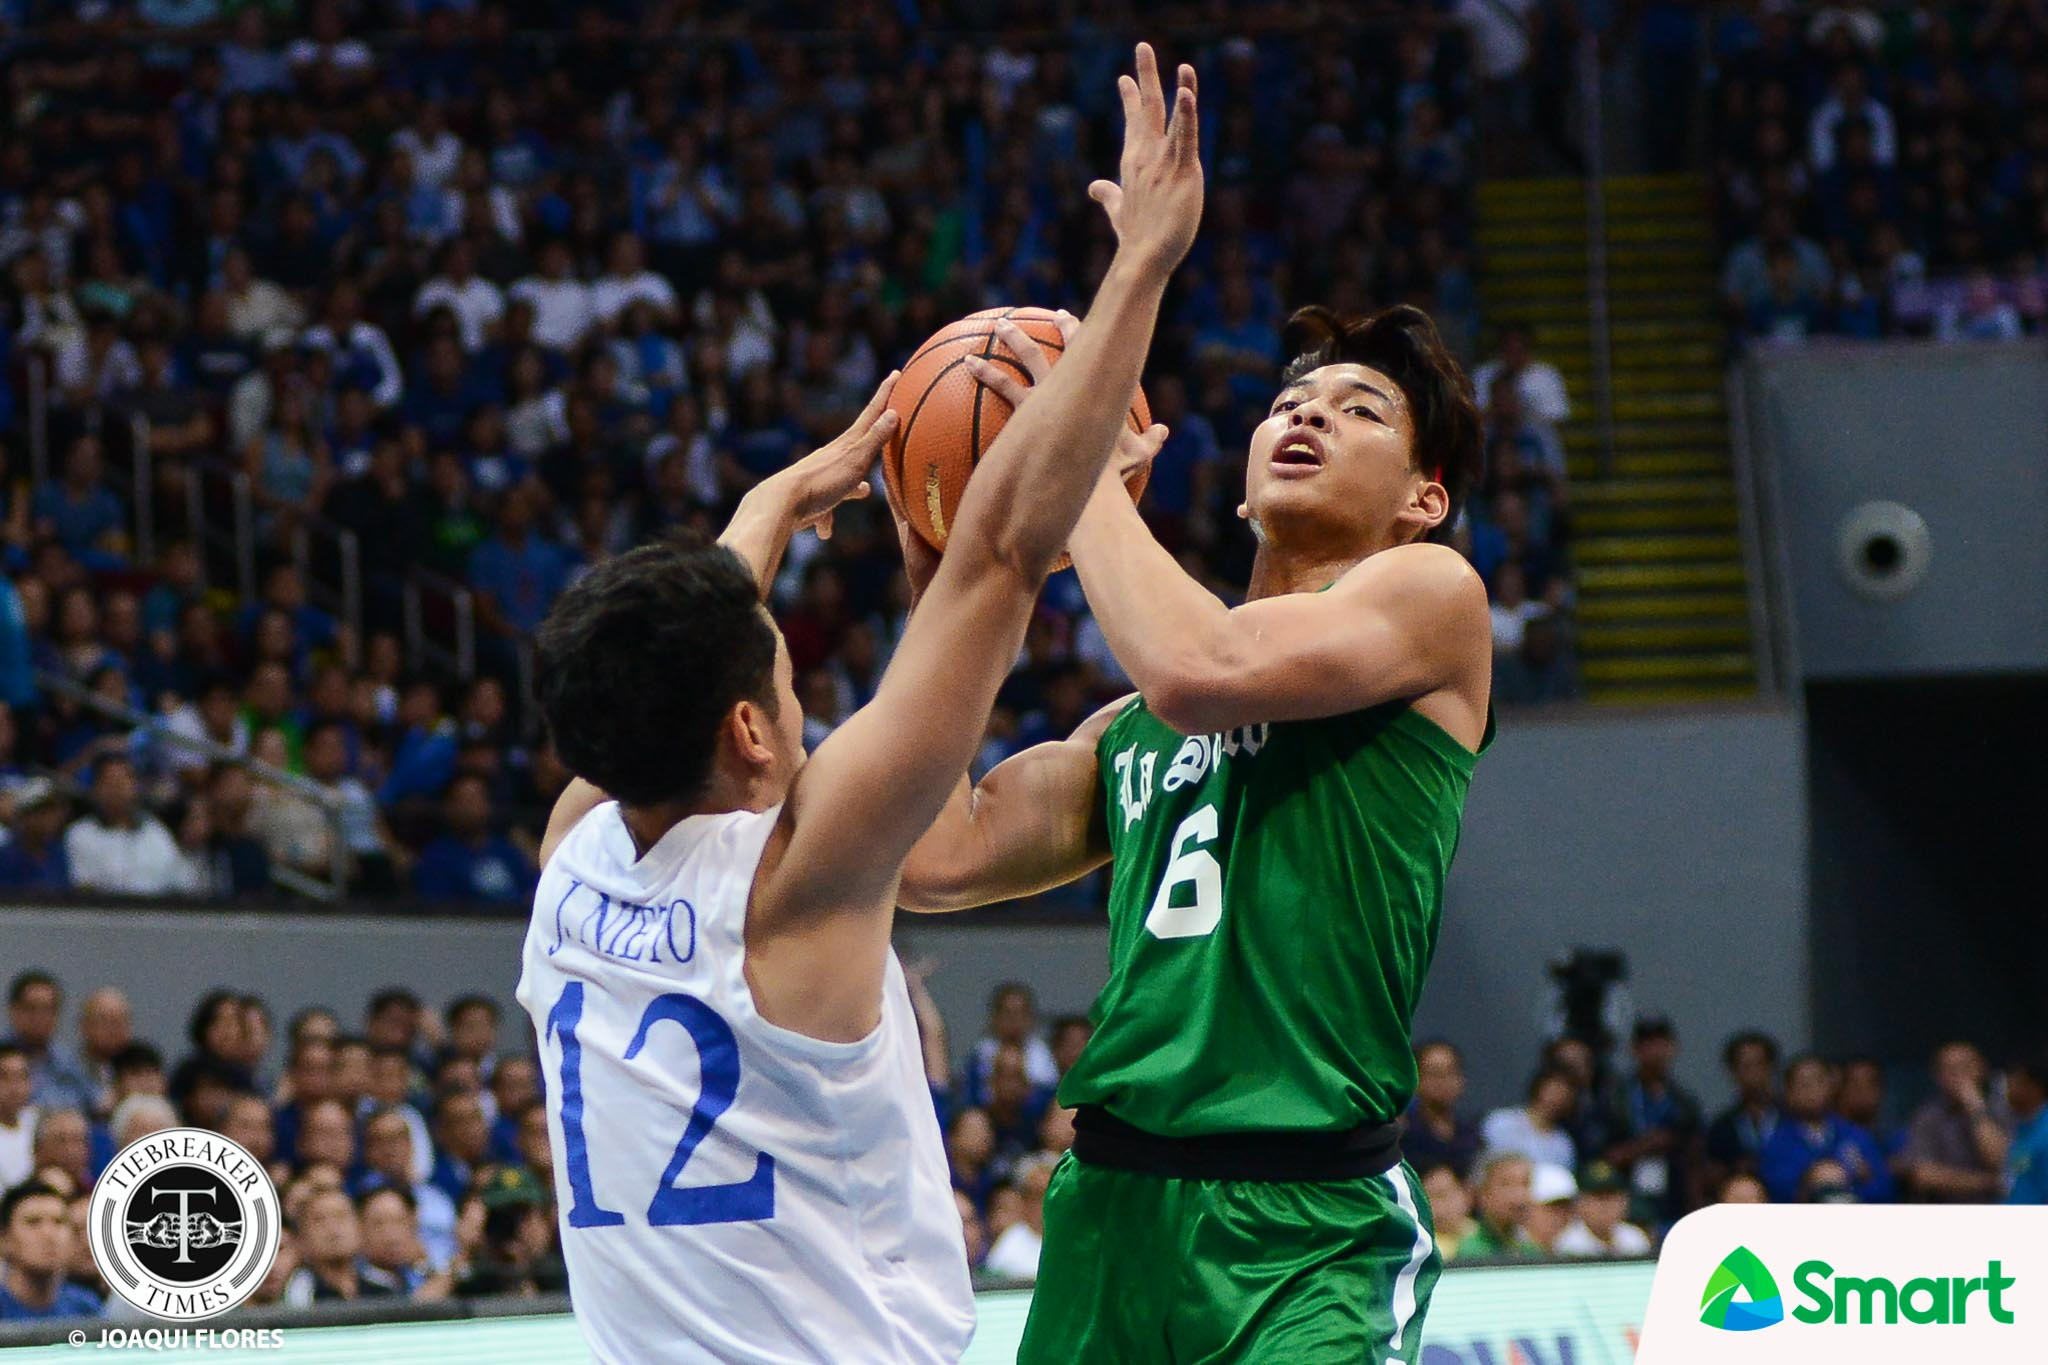 Philippine Sports News - Tiebreaker Times Ricci Rivero finds lost confidence despite loss to Ateneo Basketball DLSU News UAAP  UAAP Season 80 Men's Basketball UAAP Season 80 Ricci Rivero DLSU Men's Basketball